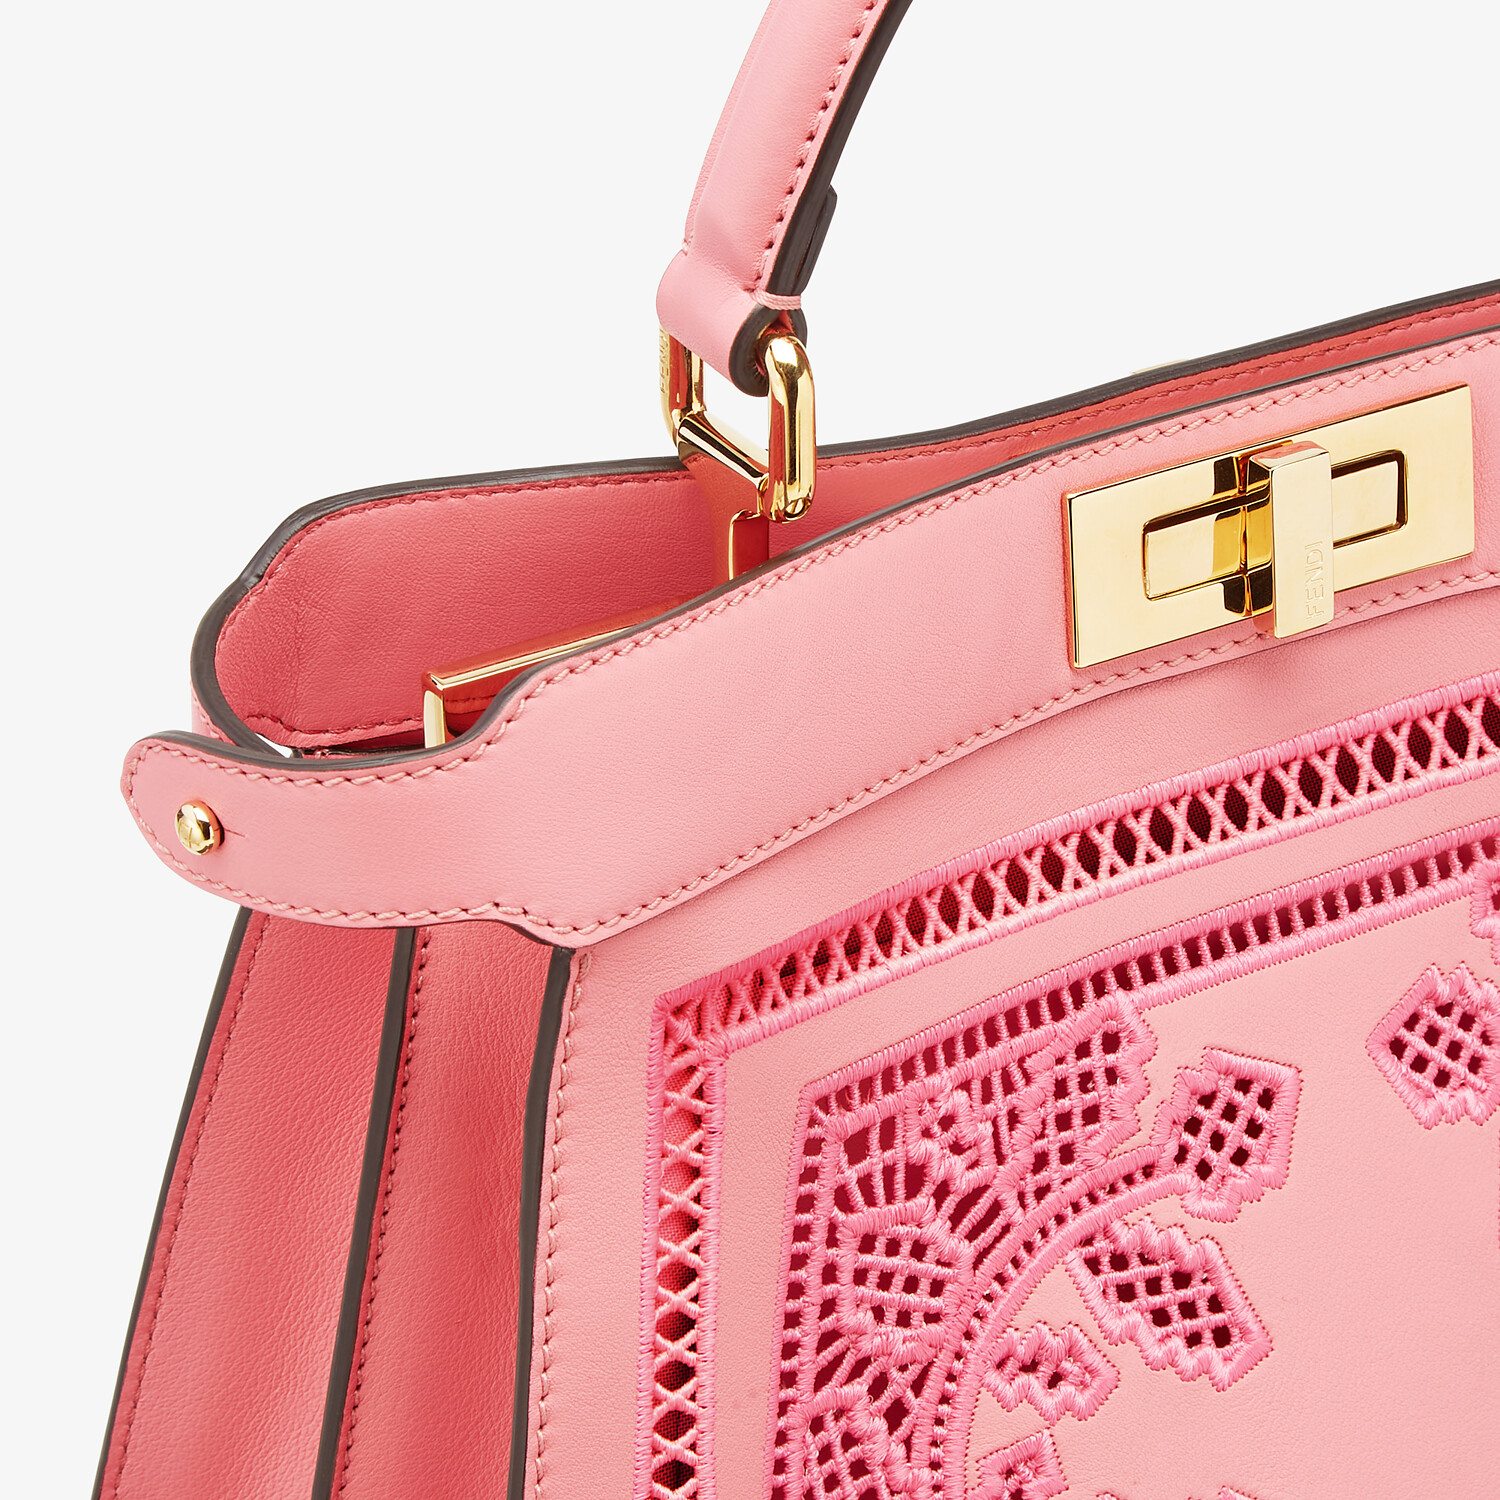 FENDI PEEKABOO ISEEU MEDIUM - Pink leather bag with embroidery - view 7 detail